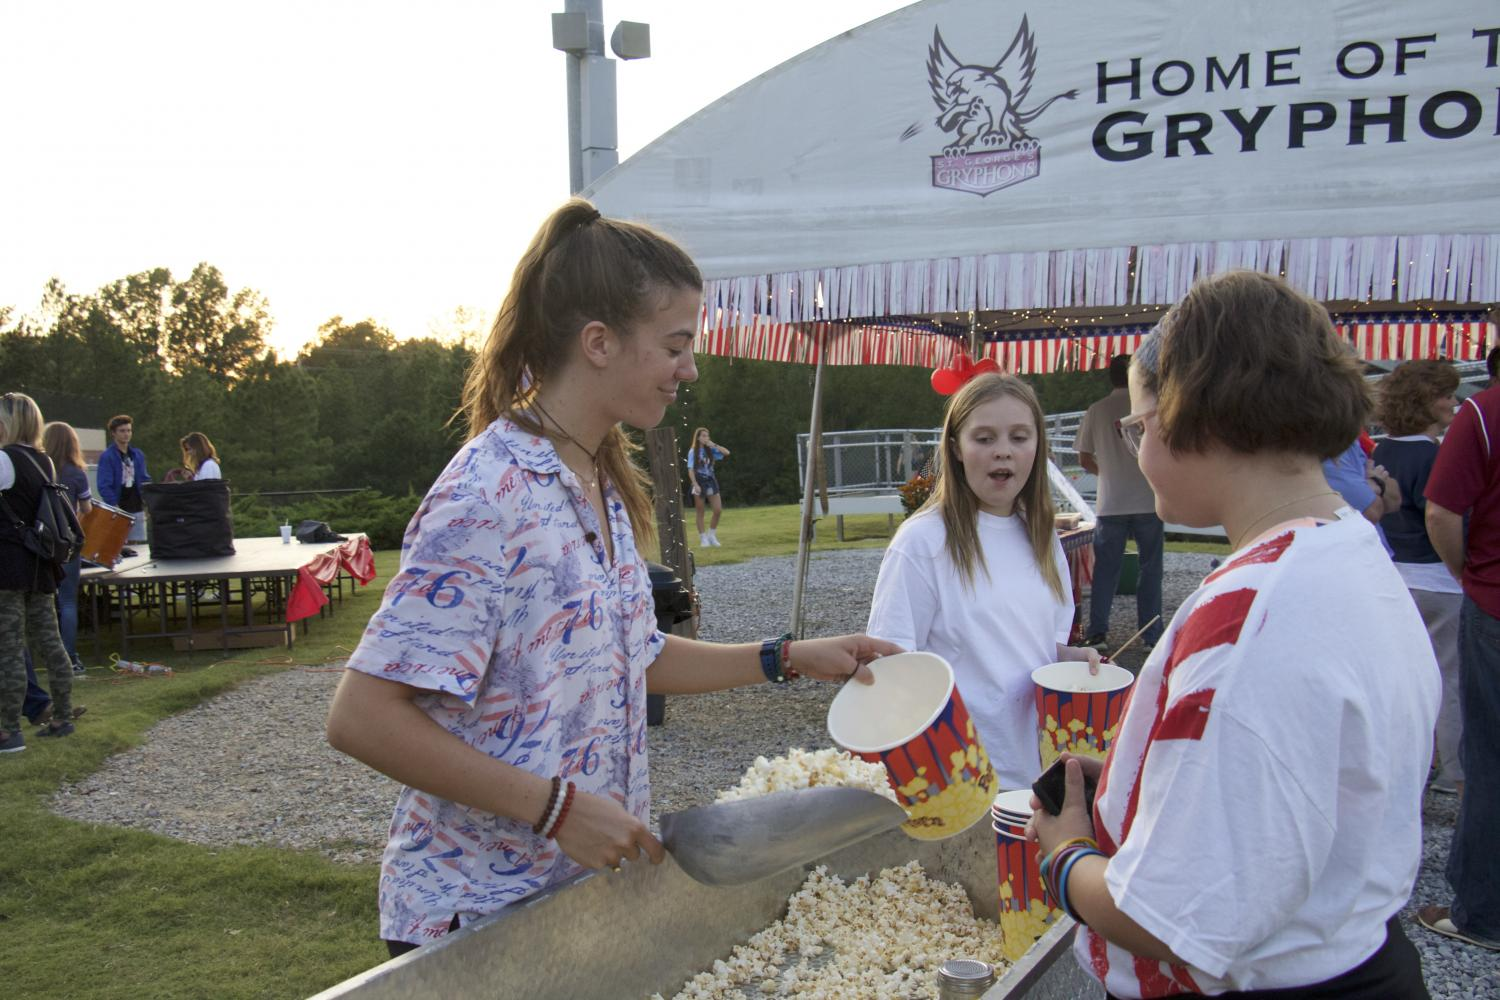 Senior+Alice+Crenshaw+scoops+popcorn+for+students+at+the+Fine+Arts+Tailgate.+Crenshaw+and+her+father+made+homemade+kettle+corn+for+the+festivities.